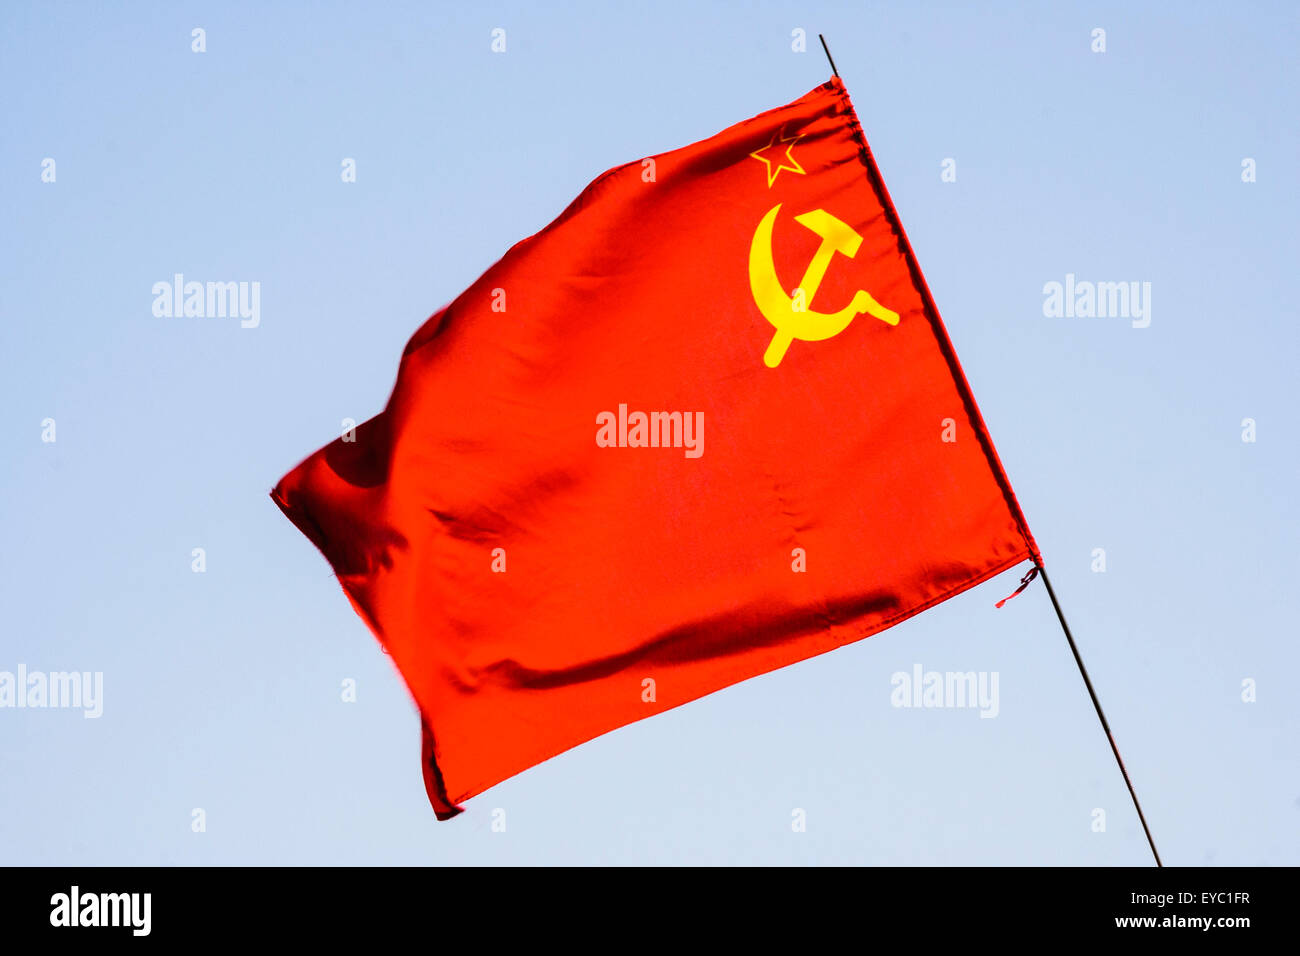 hammer and sickle flag stock photos amp hammer and sickle